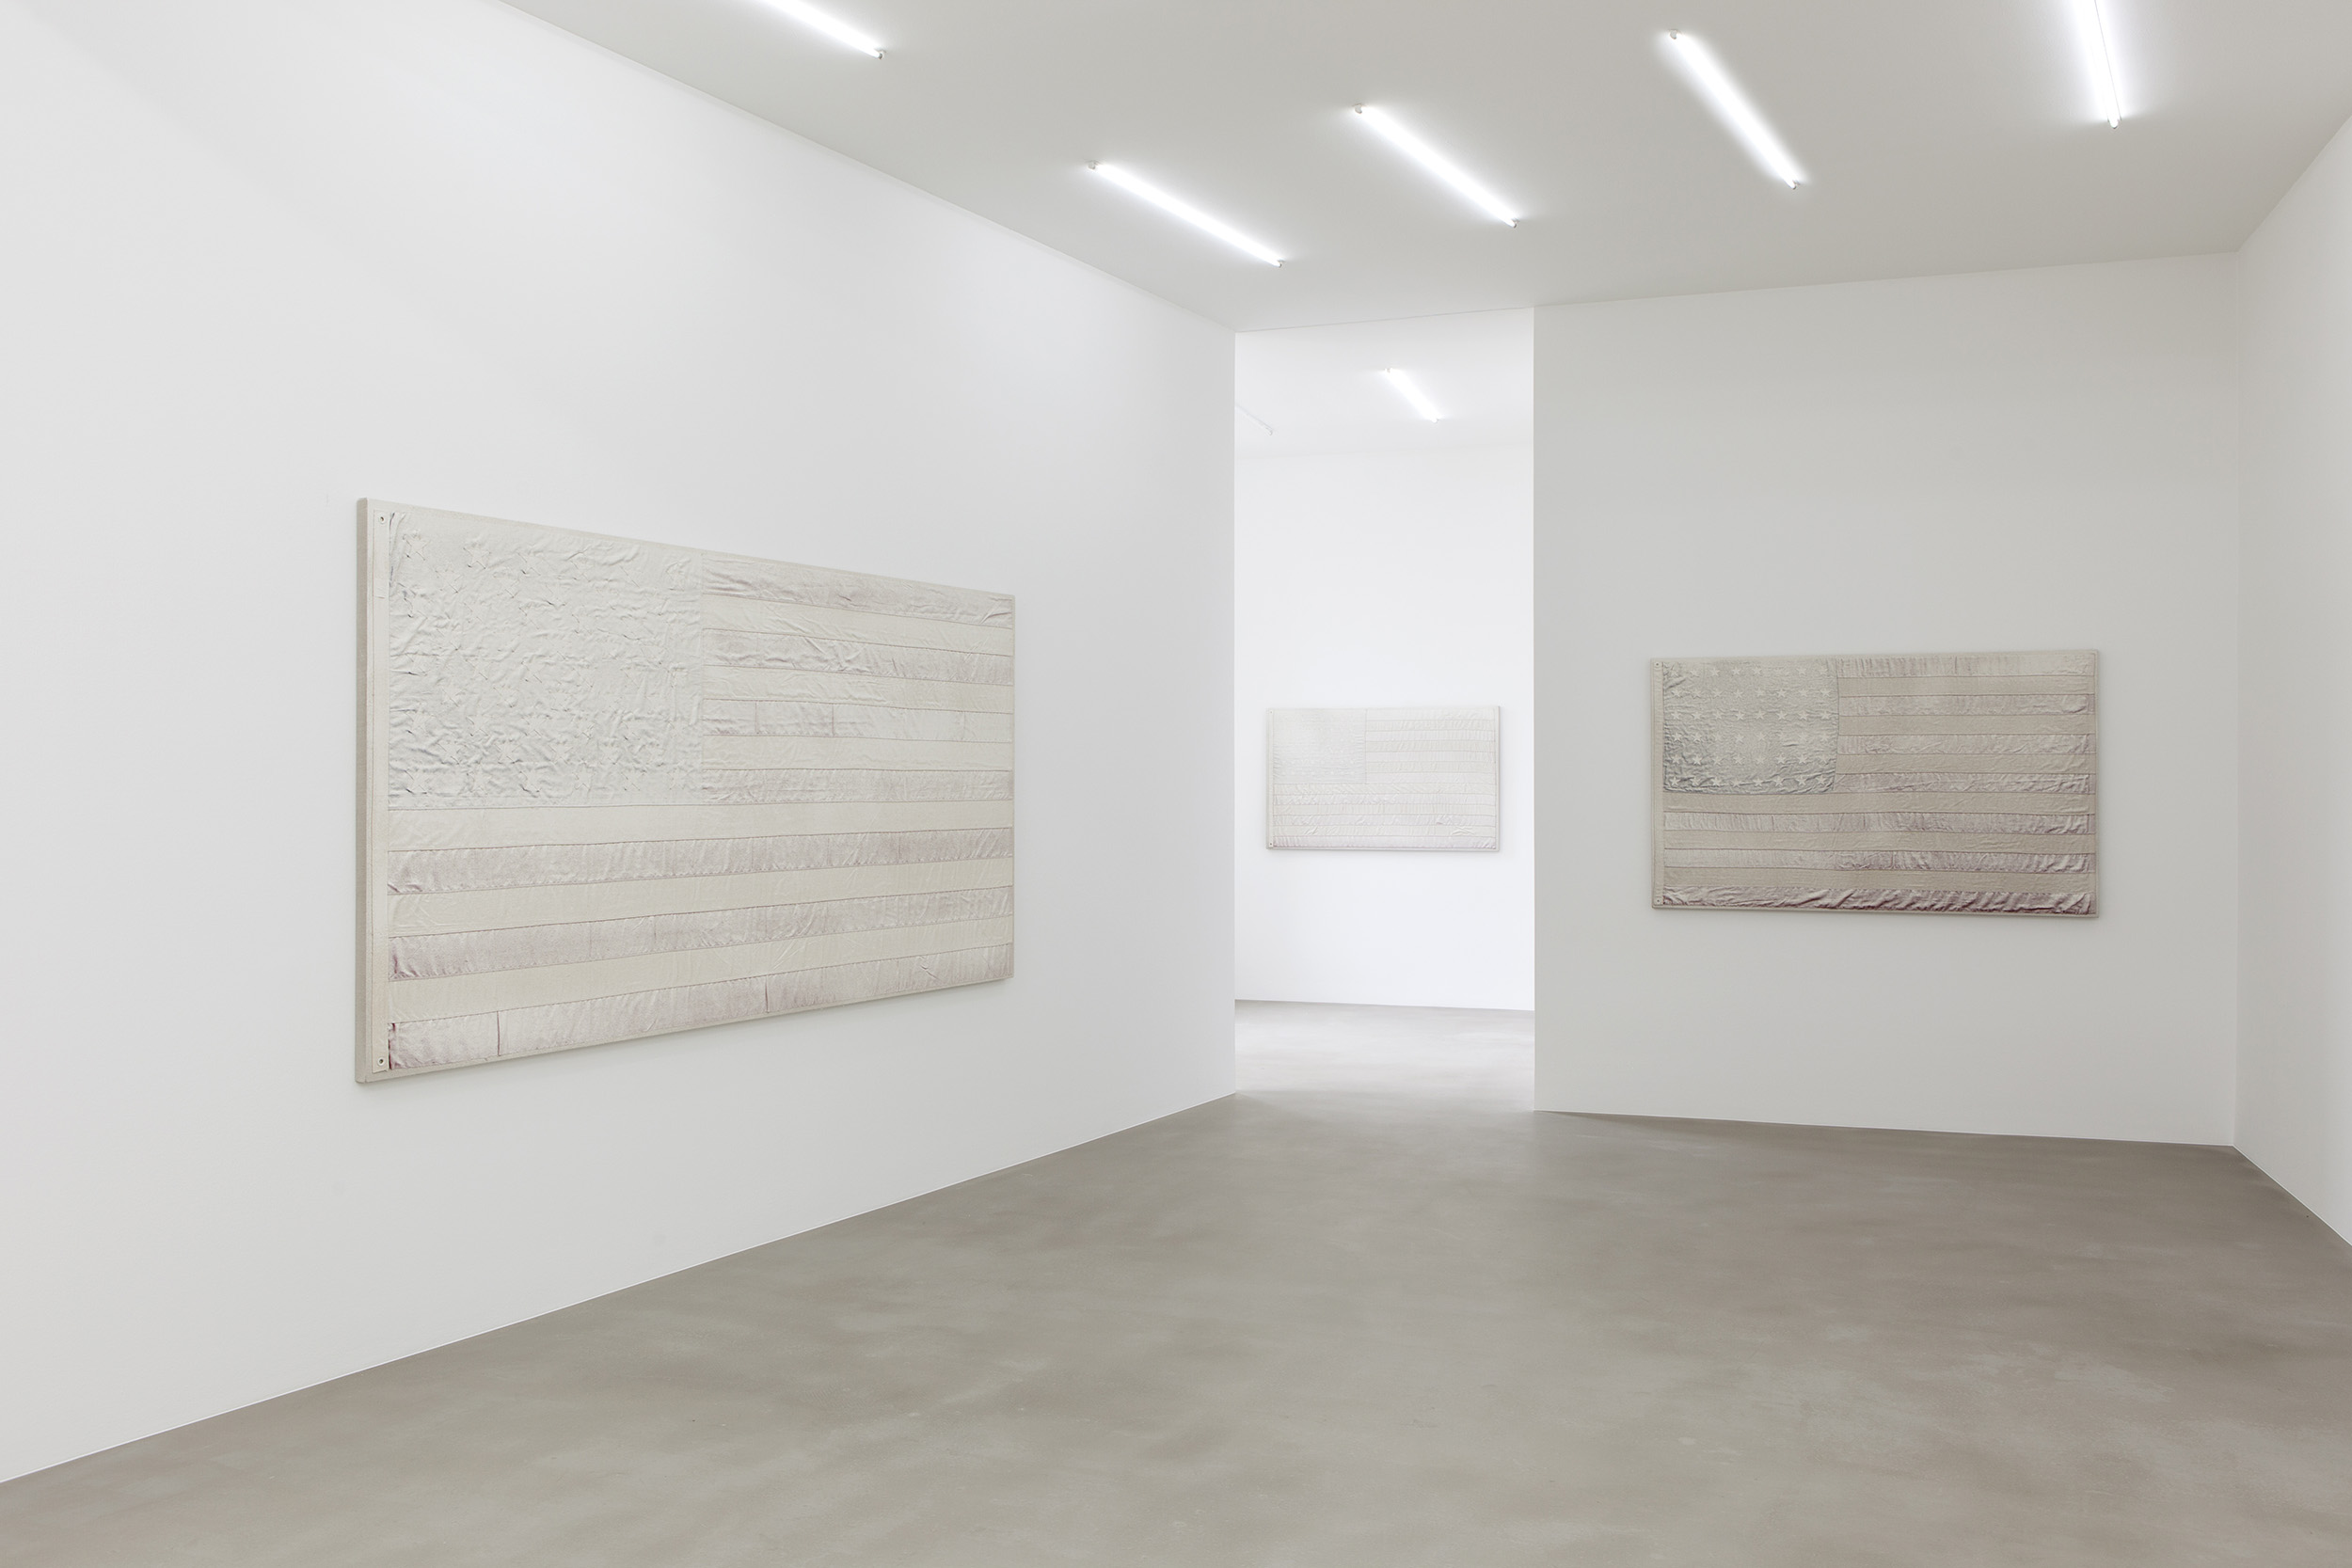 3 - AA Bronson at Esther Schipper Berlin